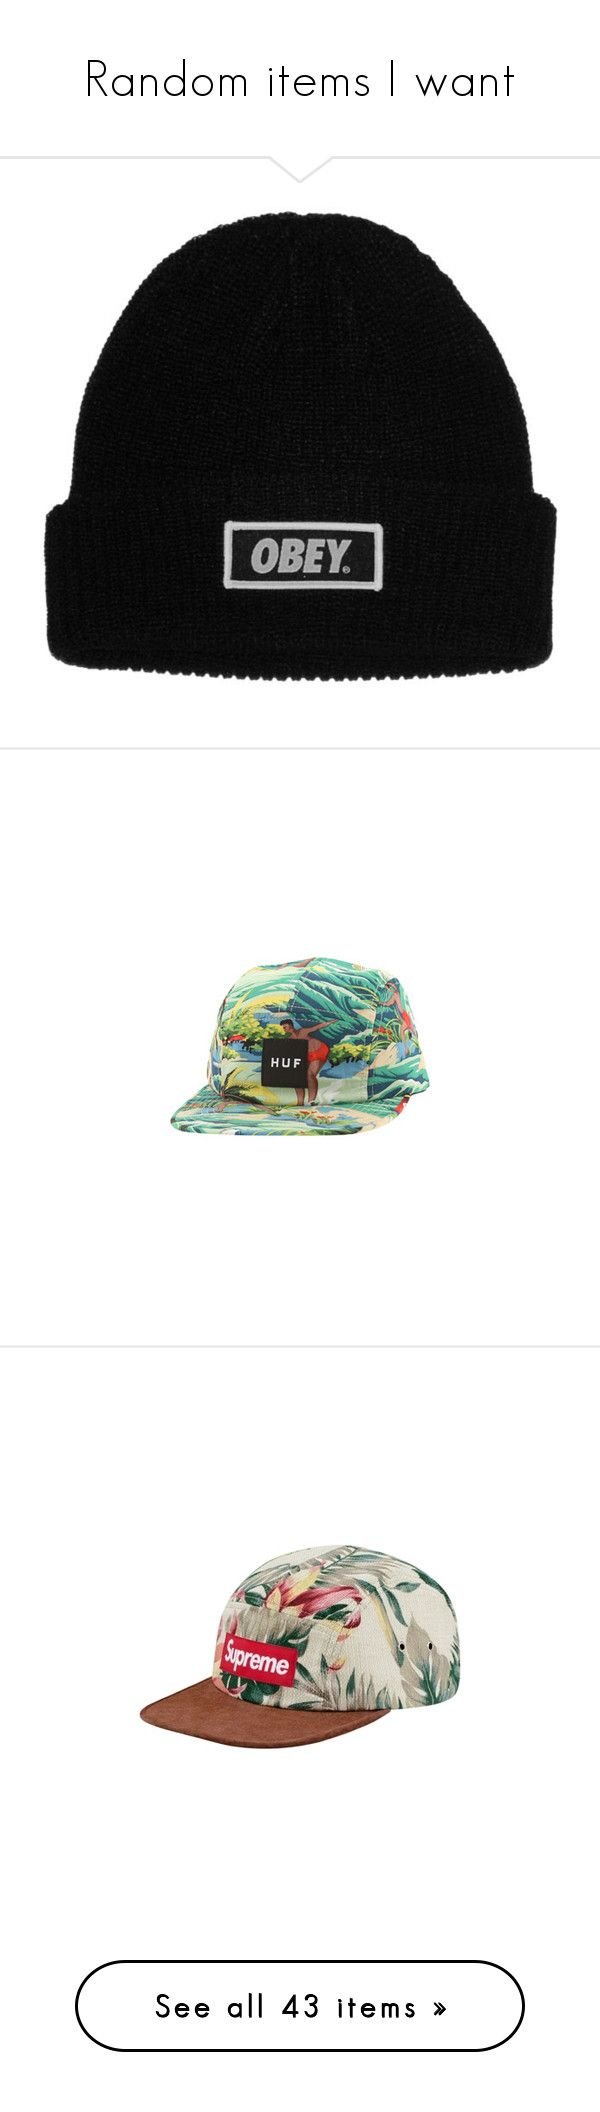 """""""Random items I want"""" by michellel3 ❤ liked on Polyvore featuring accessories, hats, beanies, men, obey clothing, beanie cap, beanie cap hat, beanie hat, hawaiian hat and adjustable hats"""